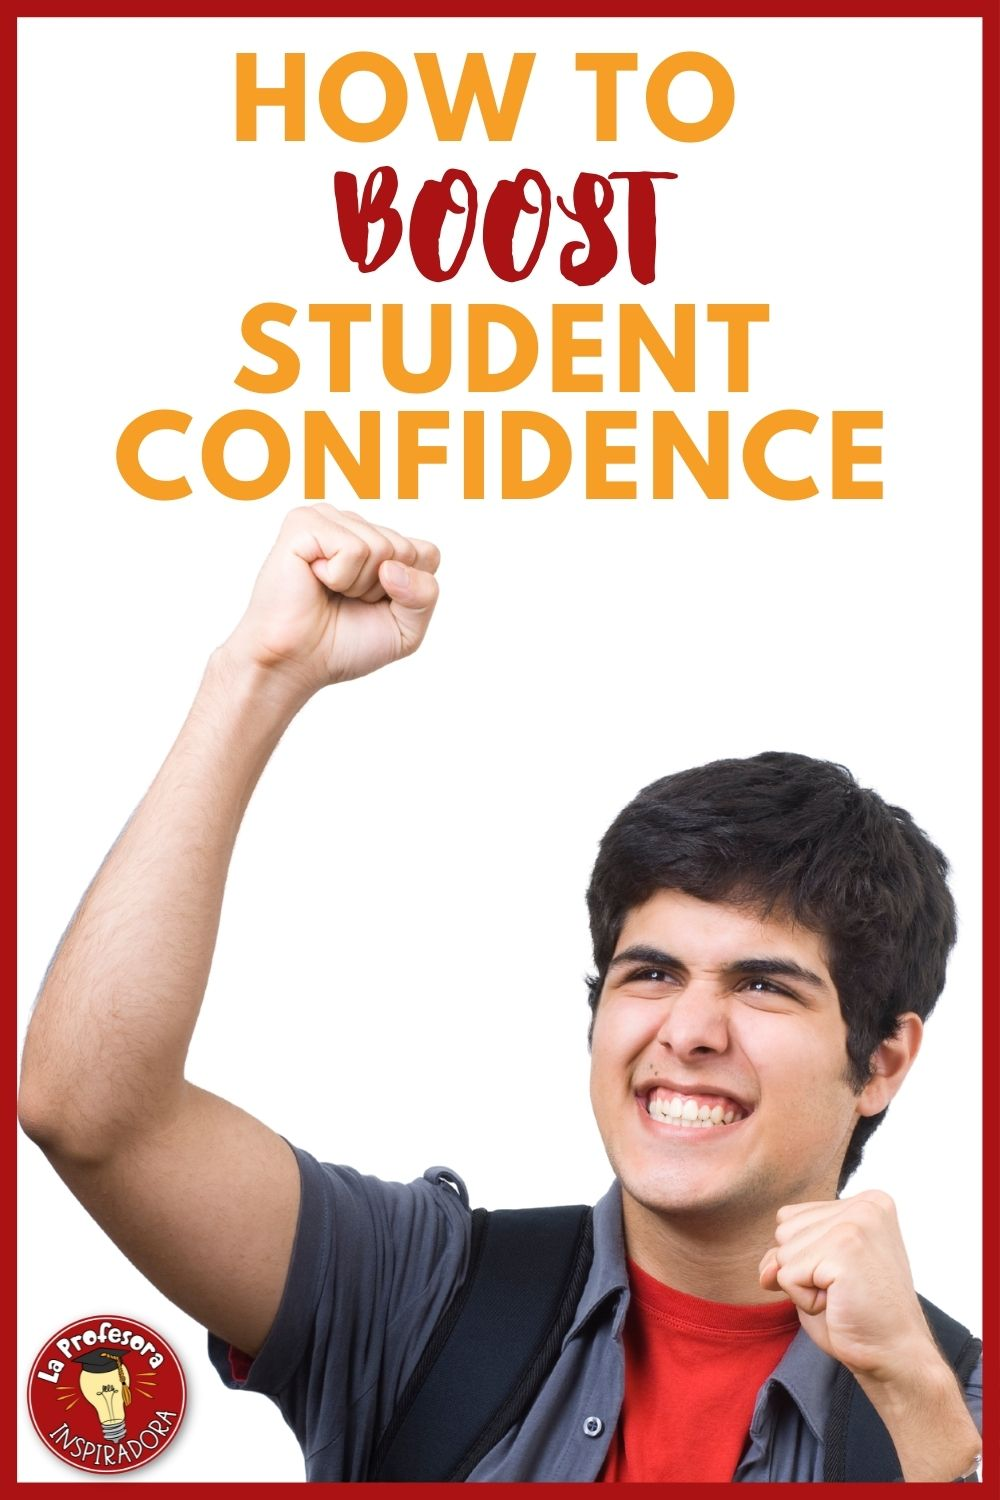 Featured image for blog post on boosting student confidence